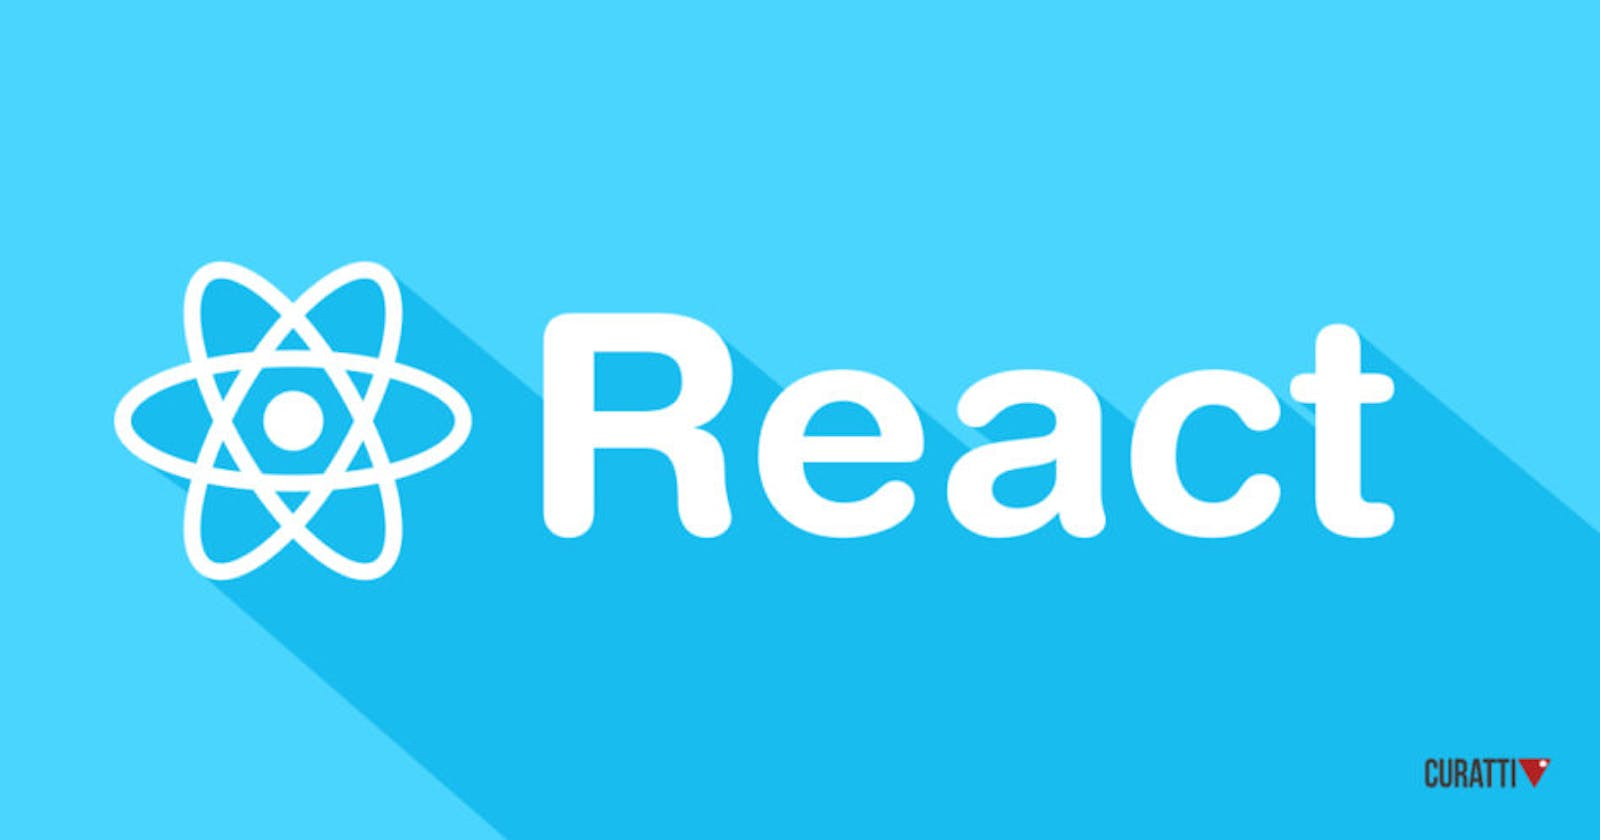 Remember the link and redirect back to it after a successful login using ReactJS